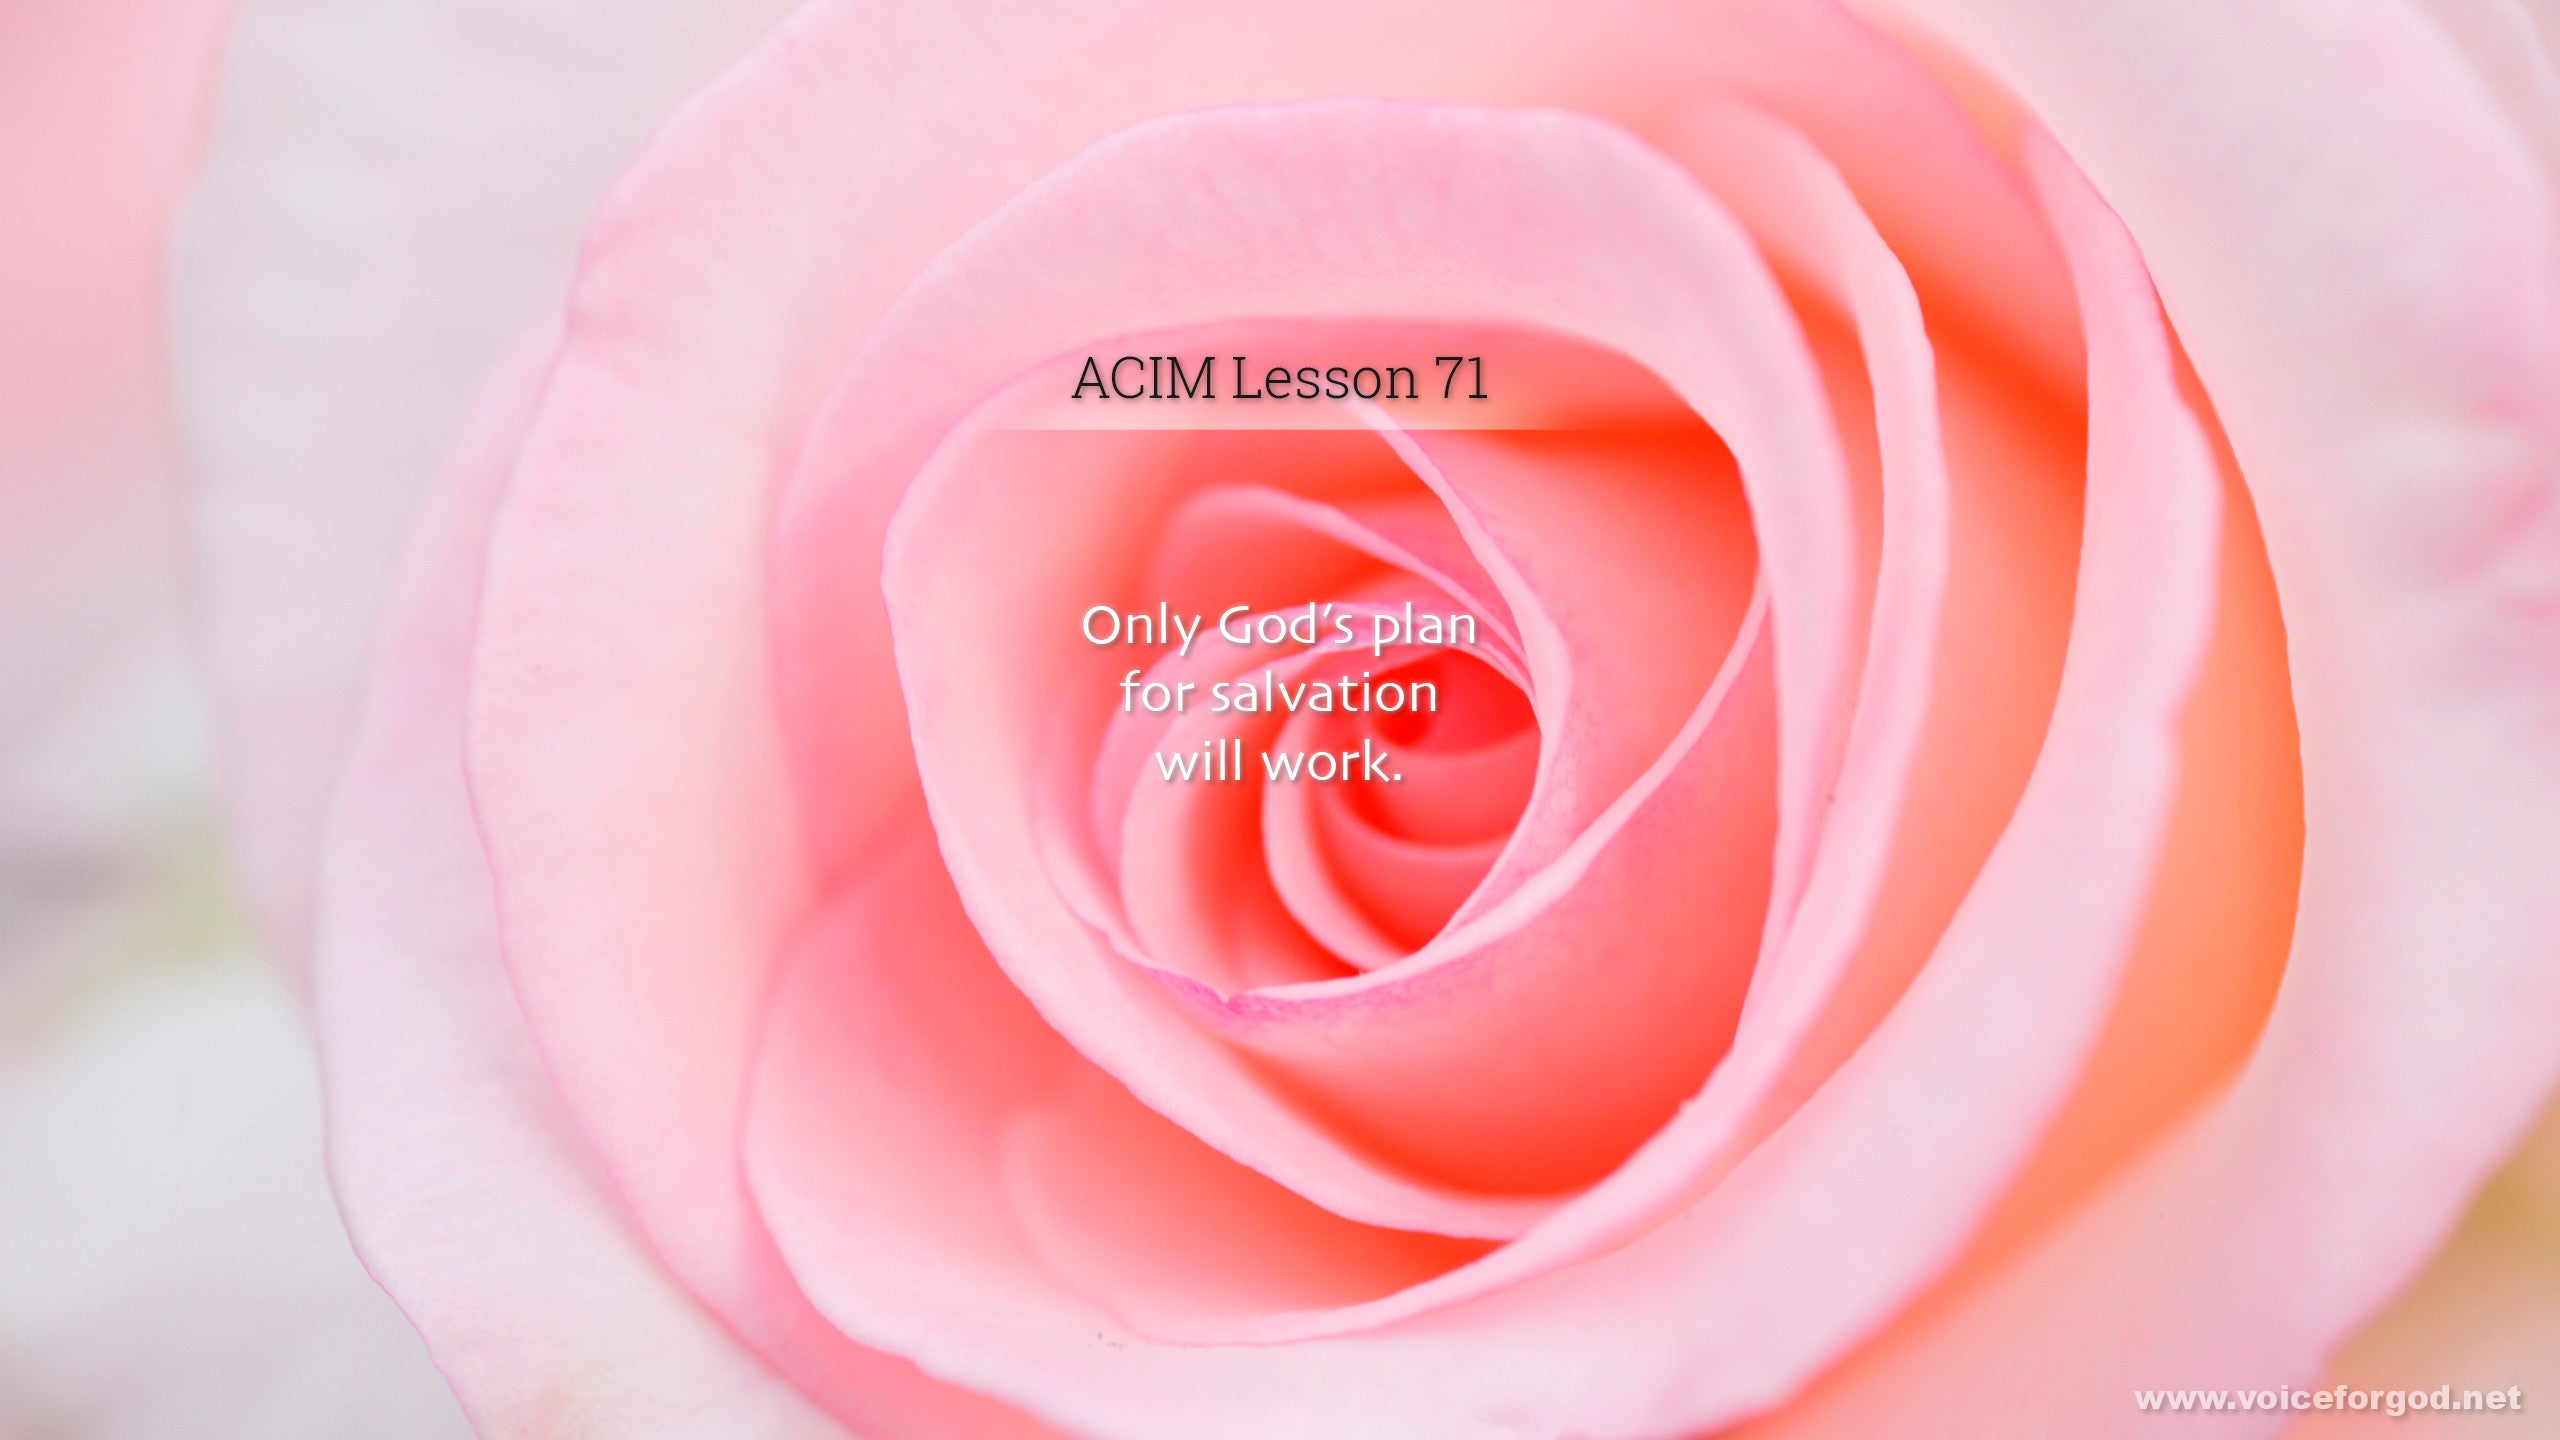 ACIM Lesson 71 - A Course in Miracles Workbook Lesson 71